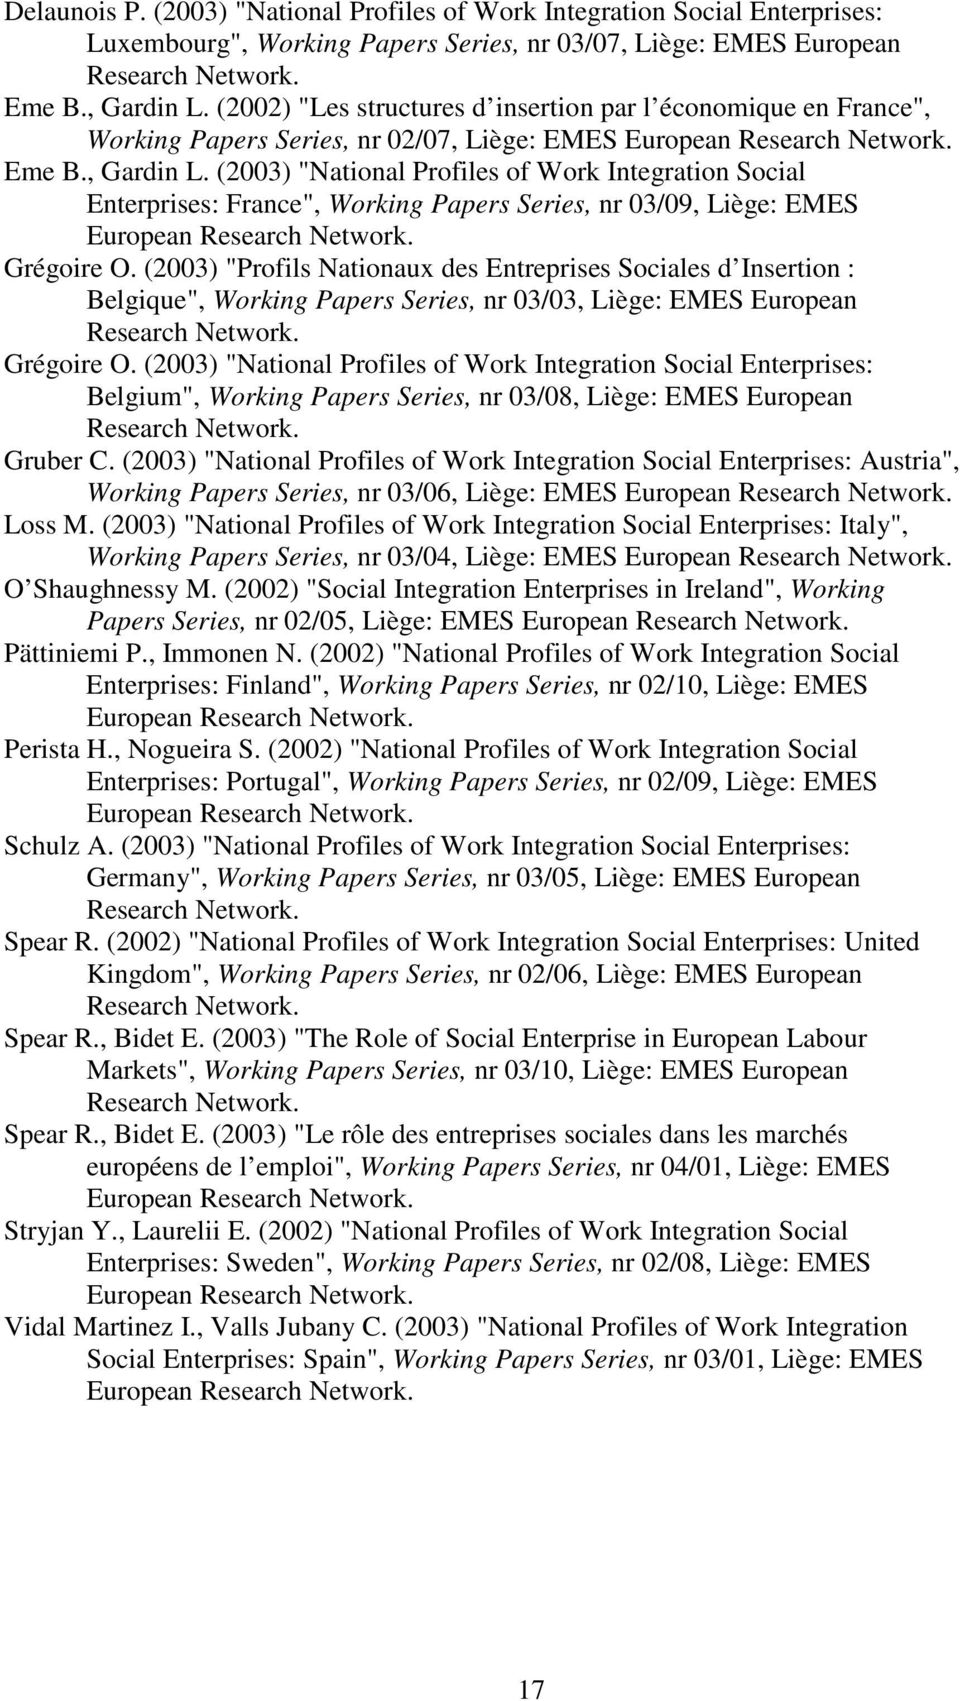 "(2003) ""National Profiles of Work Integration Social Enterprises: France"", Working Papers Series, nr 03/09, Liège: EMES European Grégoire O."